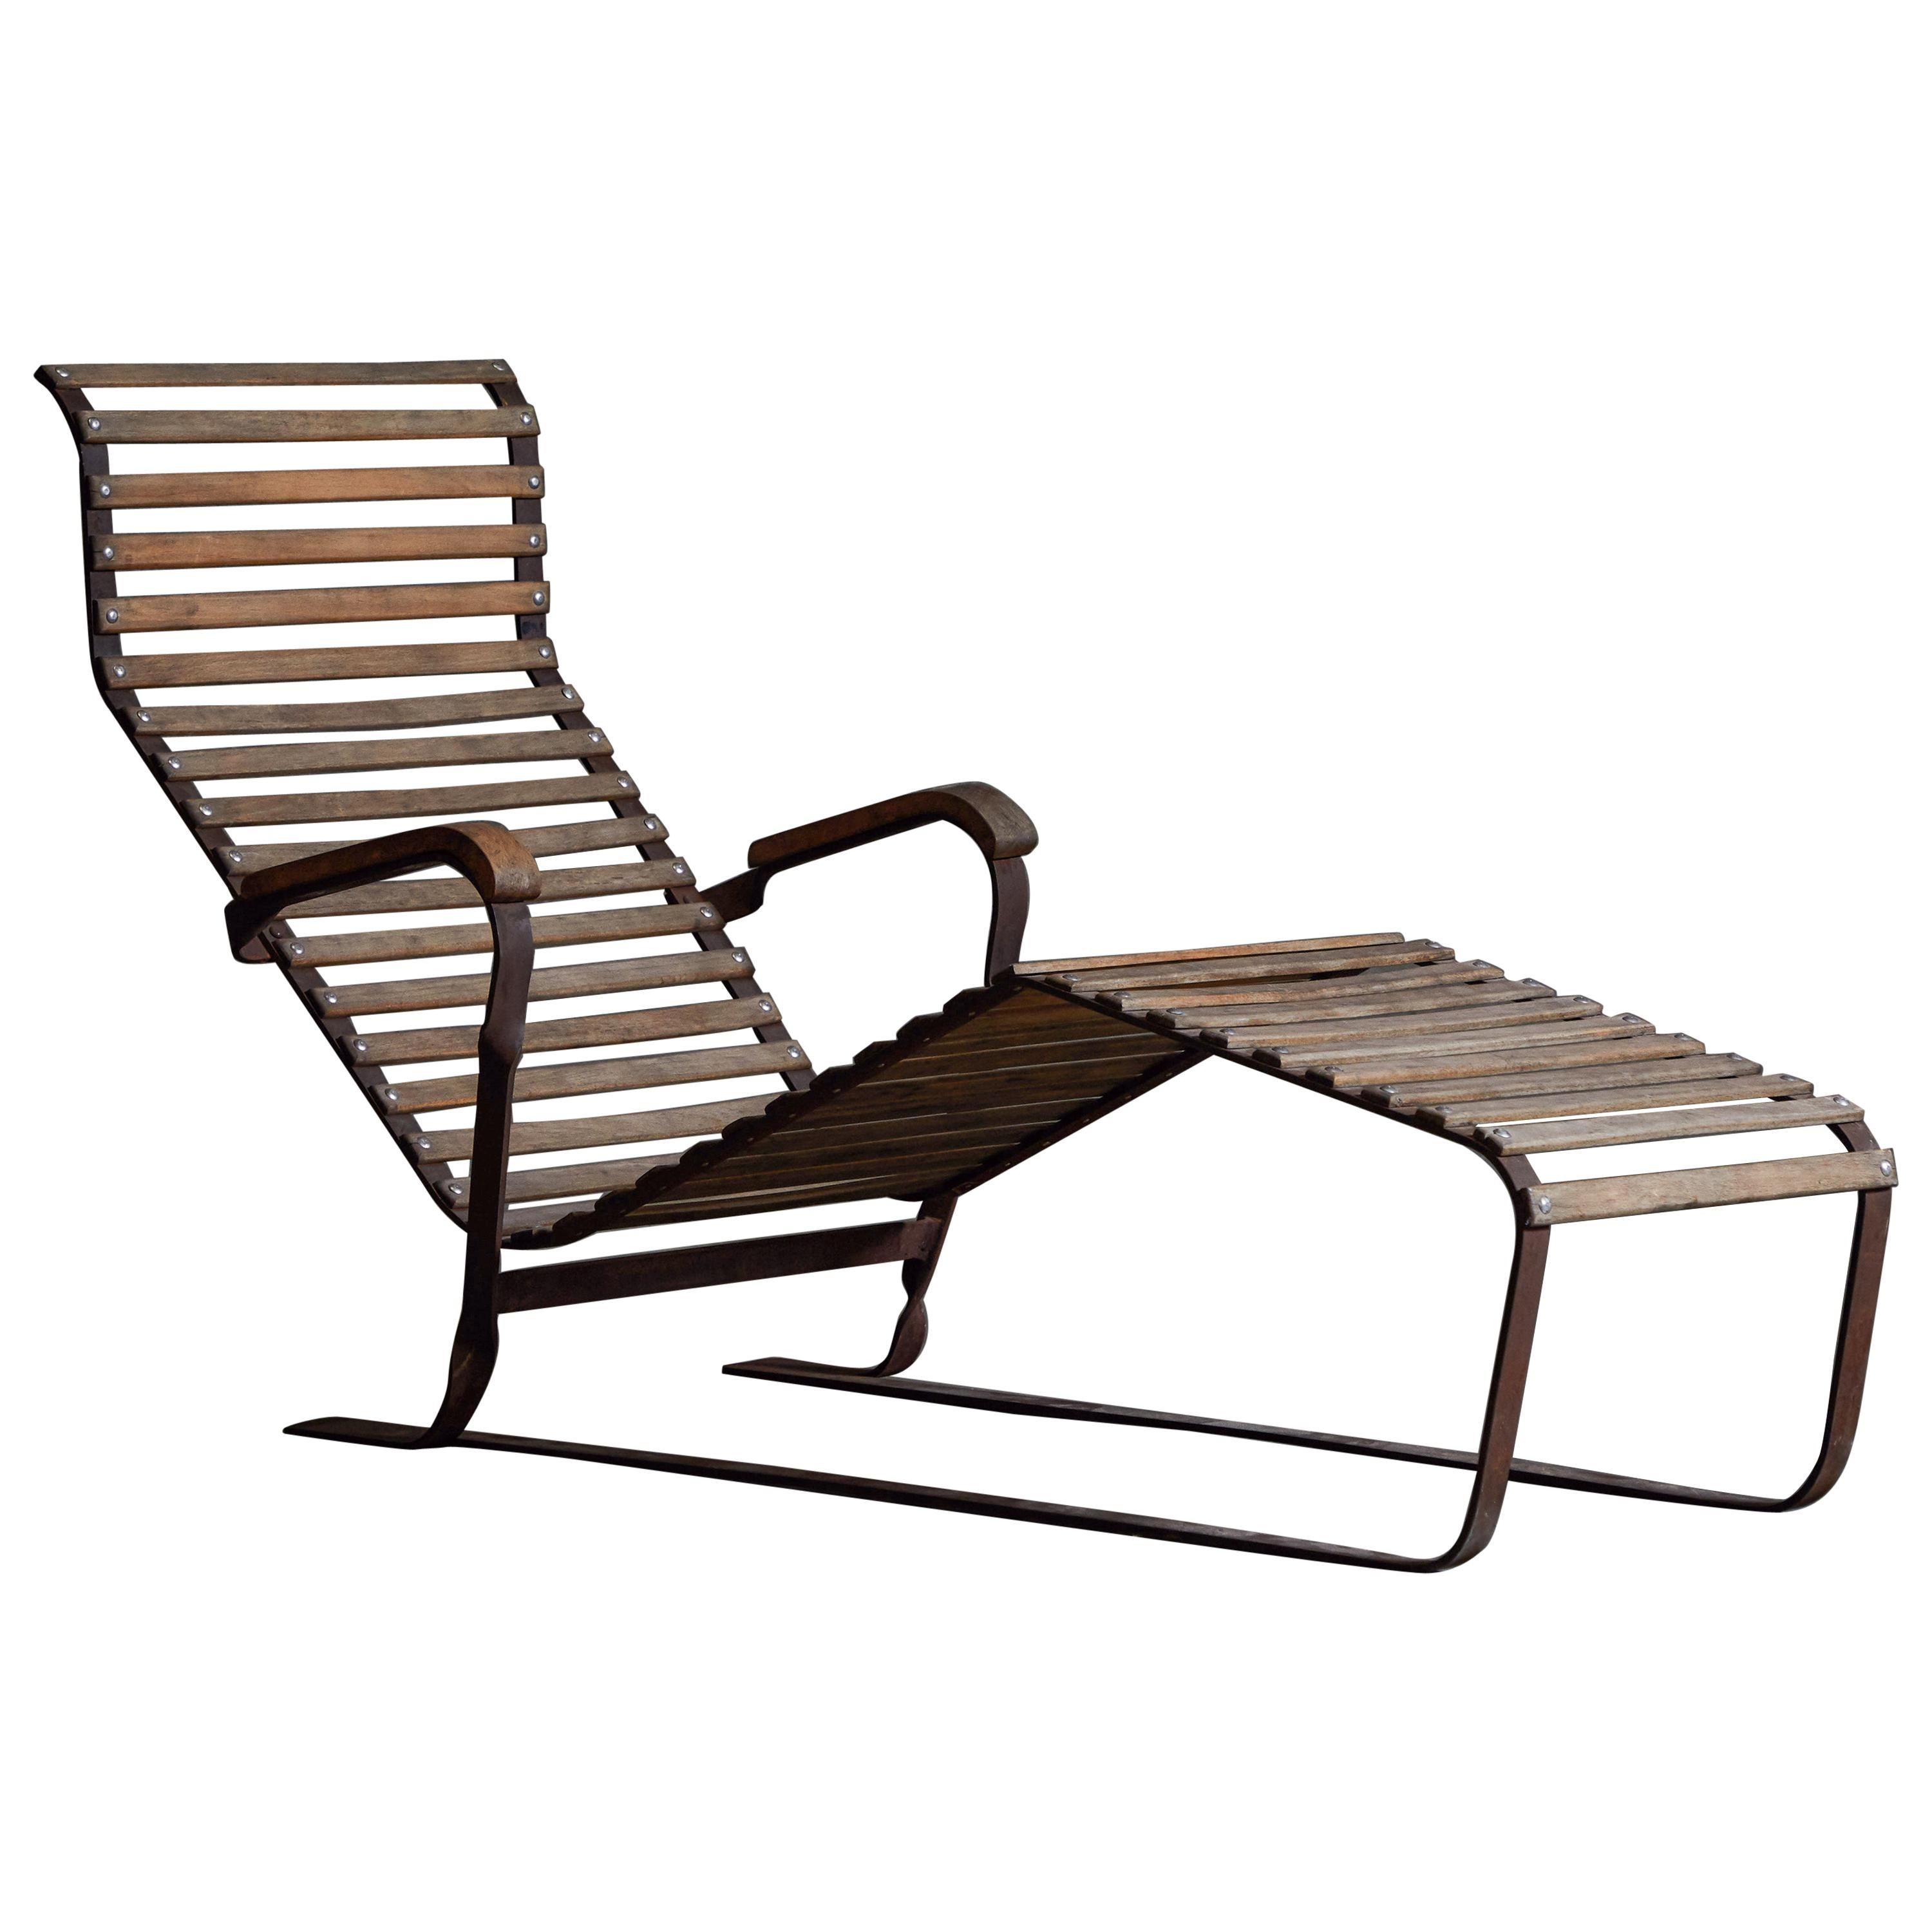 Chaise Longue by Marcel Breuer